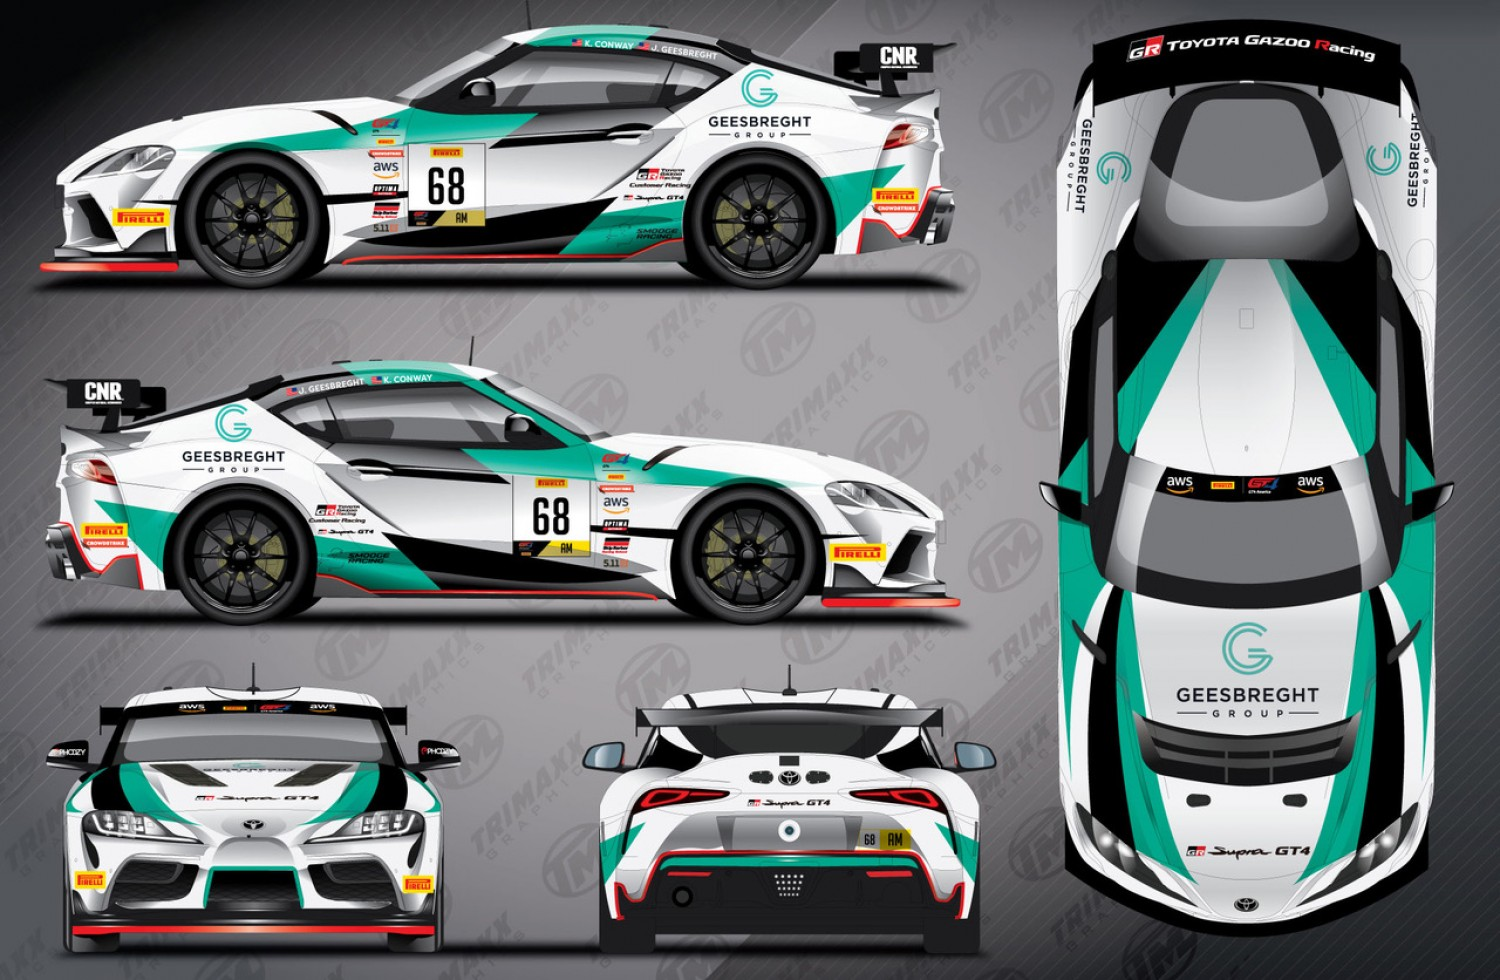 SMOOGE Racing Set To Campaign Full Season with Toyota GR Supra GT4 in Pirelli GT4 America